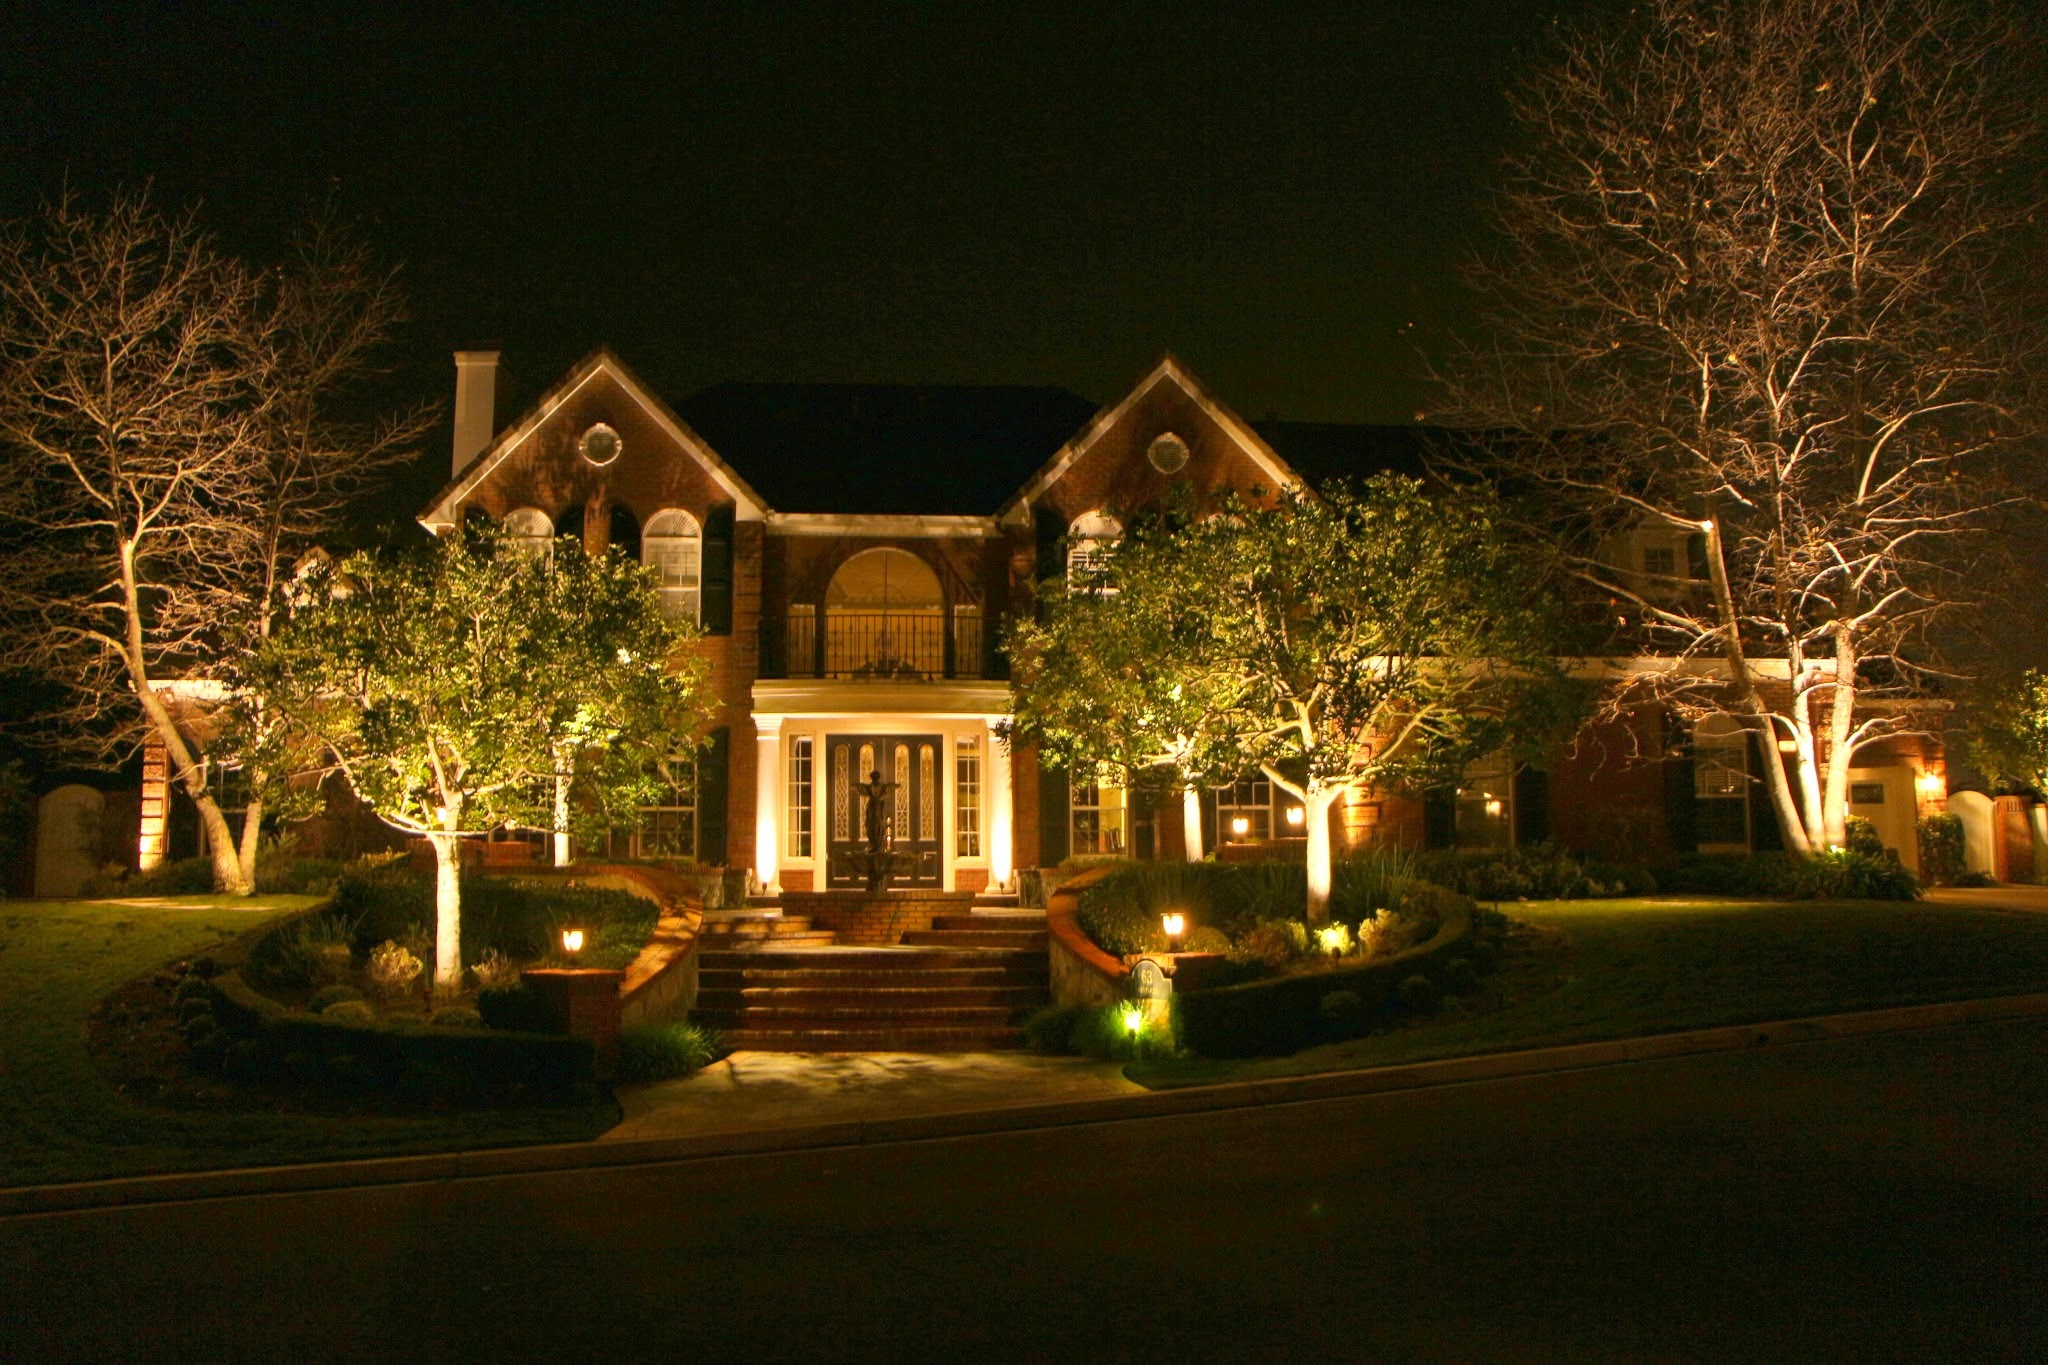 landscape lighting - Landscape Lighting Design Ideas